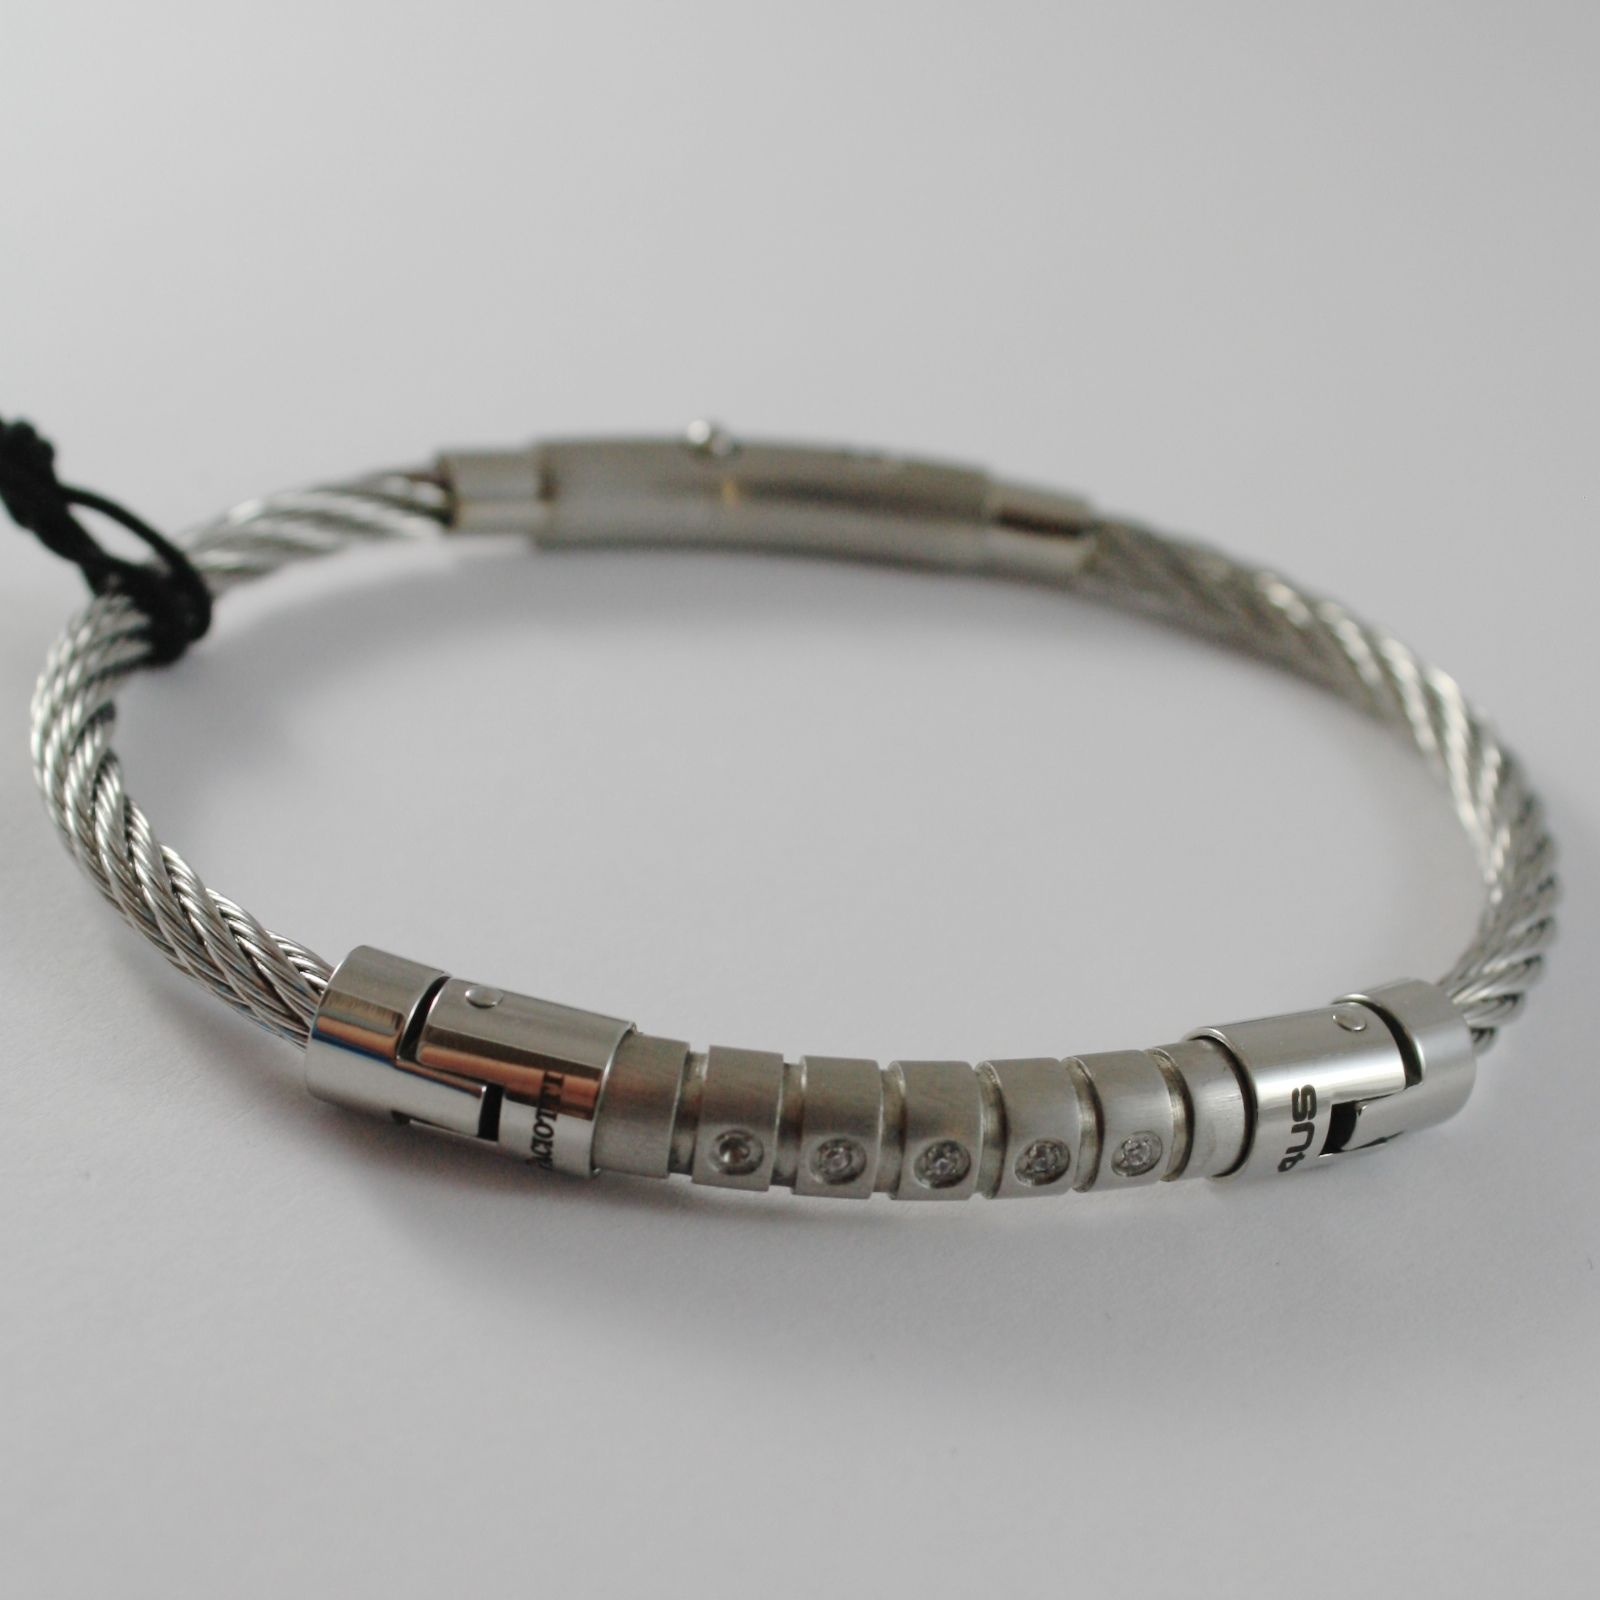 STAINLESS STEEL WIRE CABLE RIGID BANGLE ZIRCONIA BRACELET 4US BY CESARE PACIOTTI